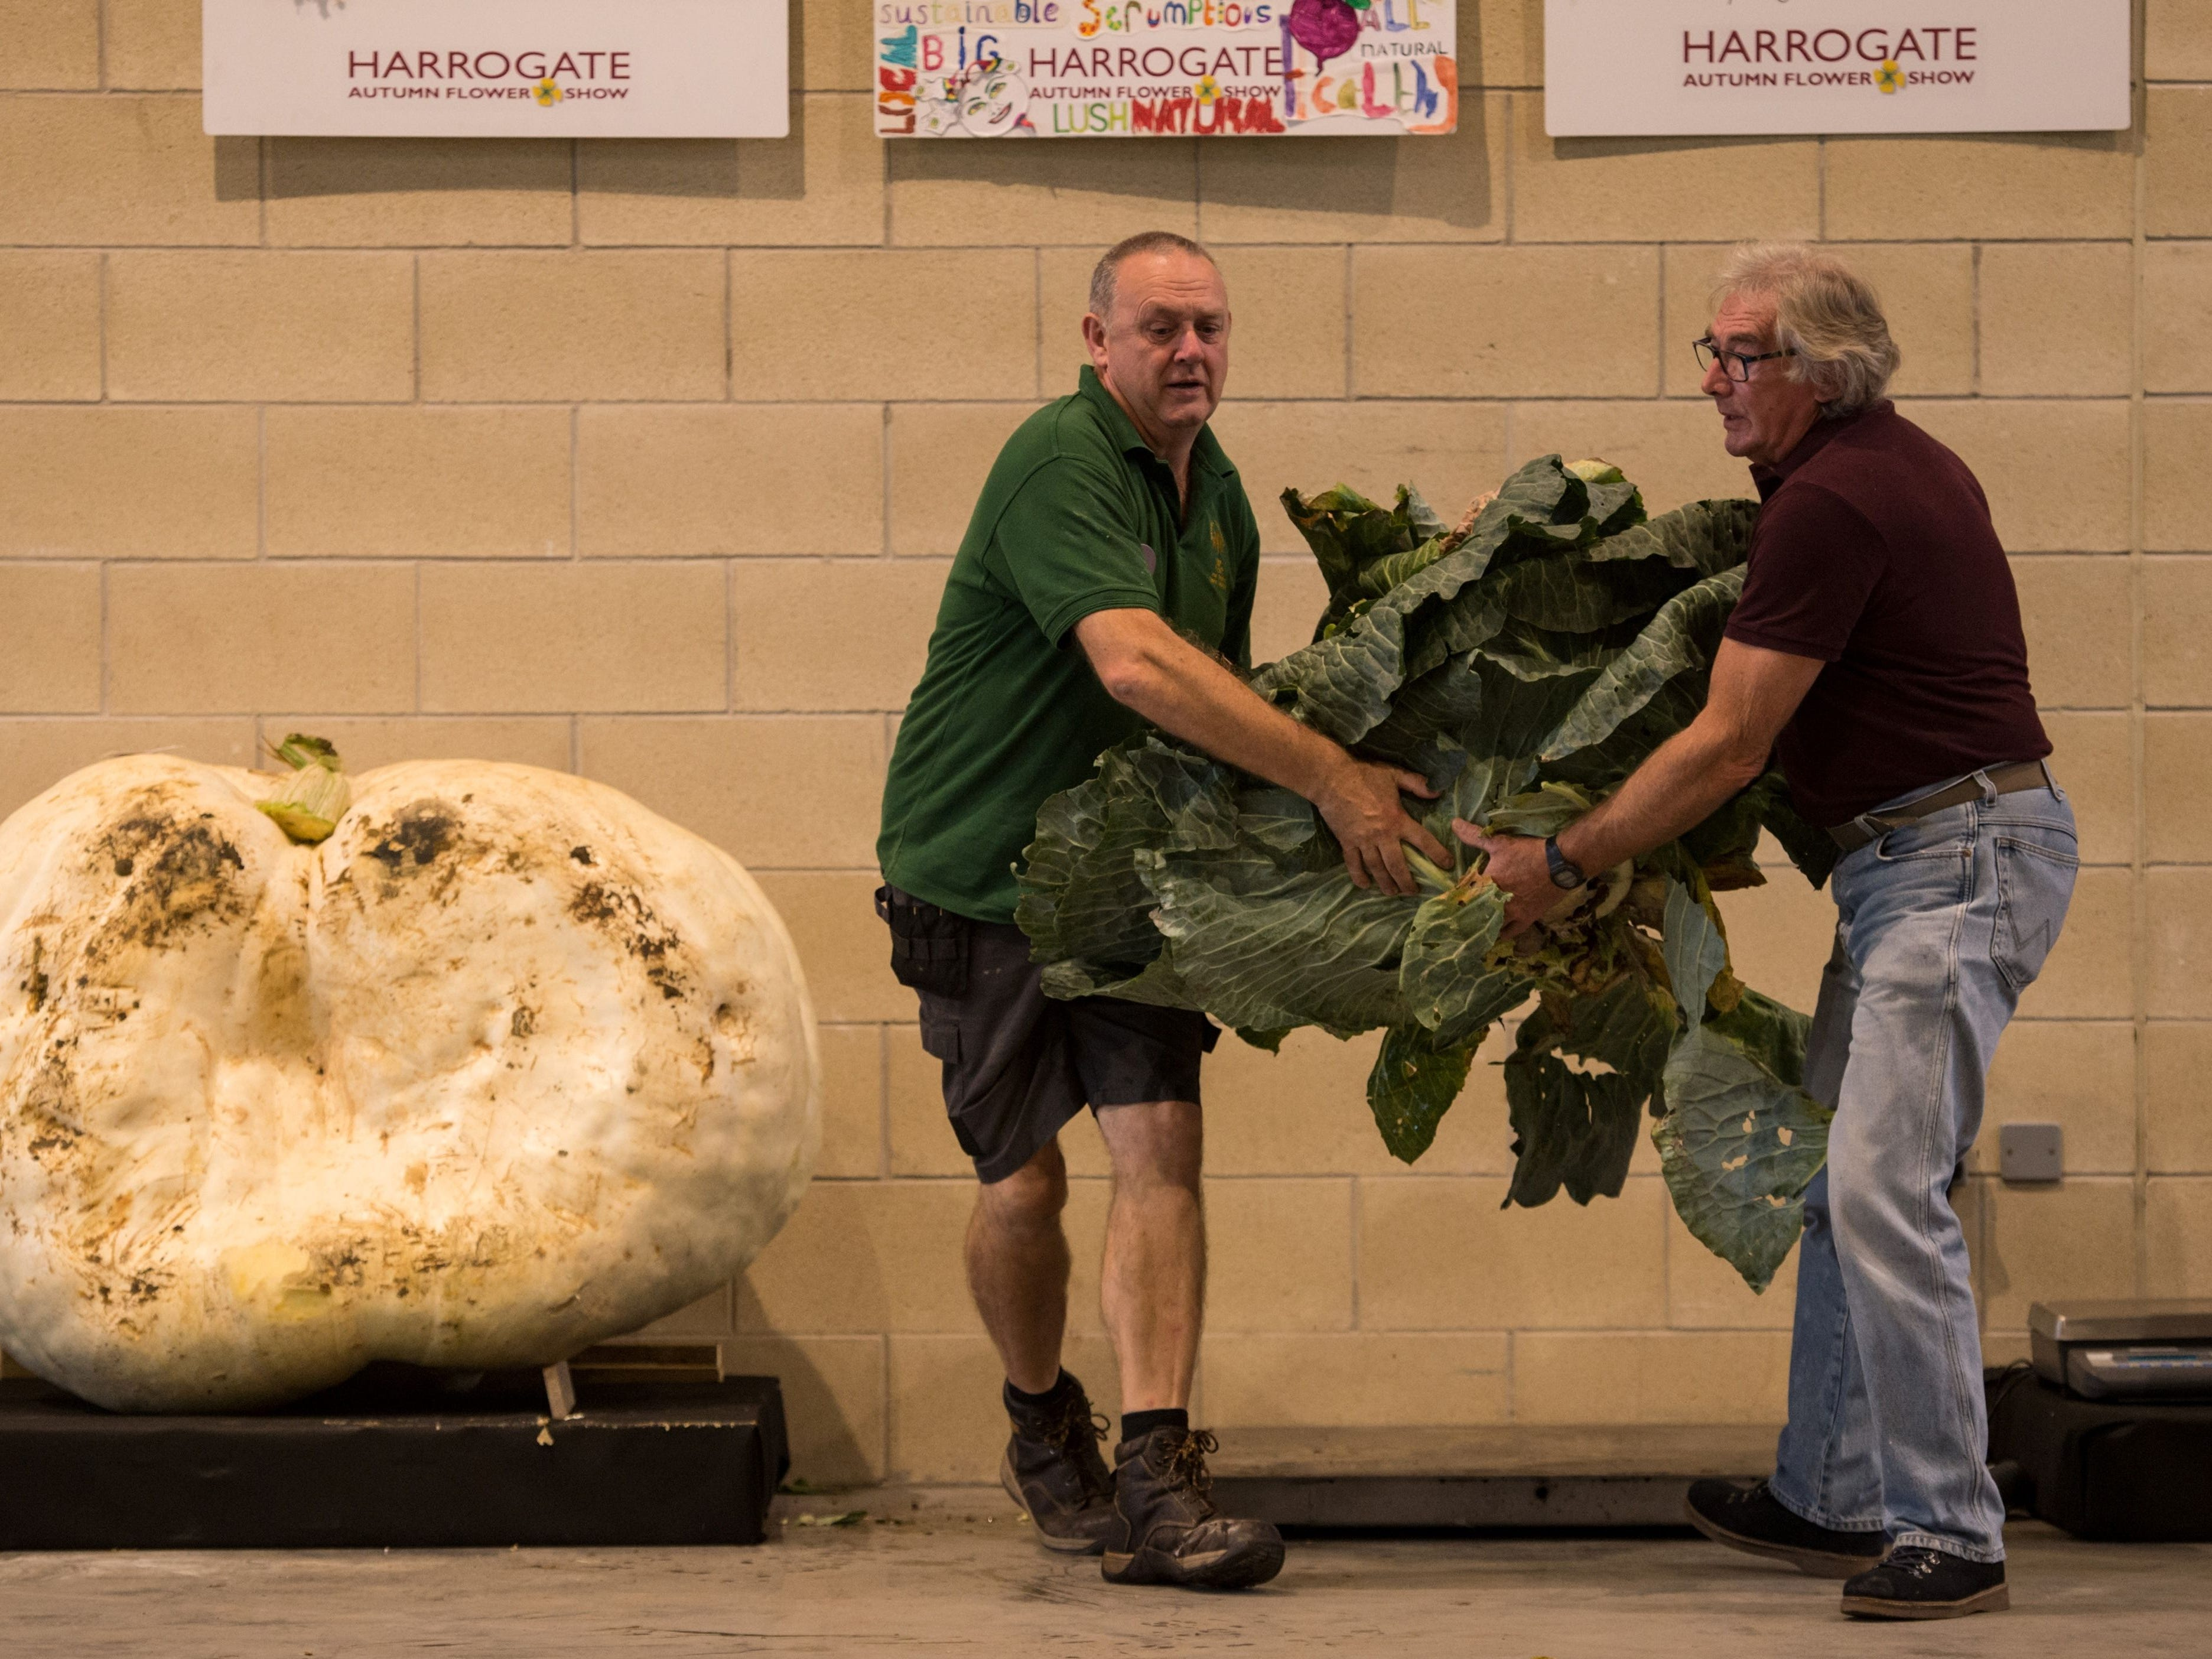 Show staff weigh cabbages and pumpkins.